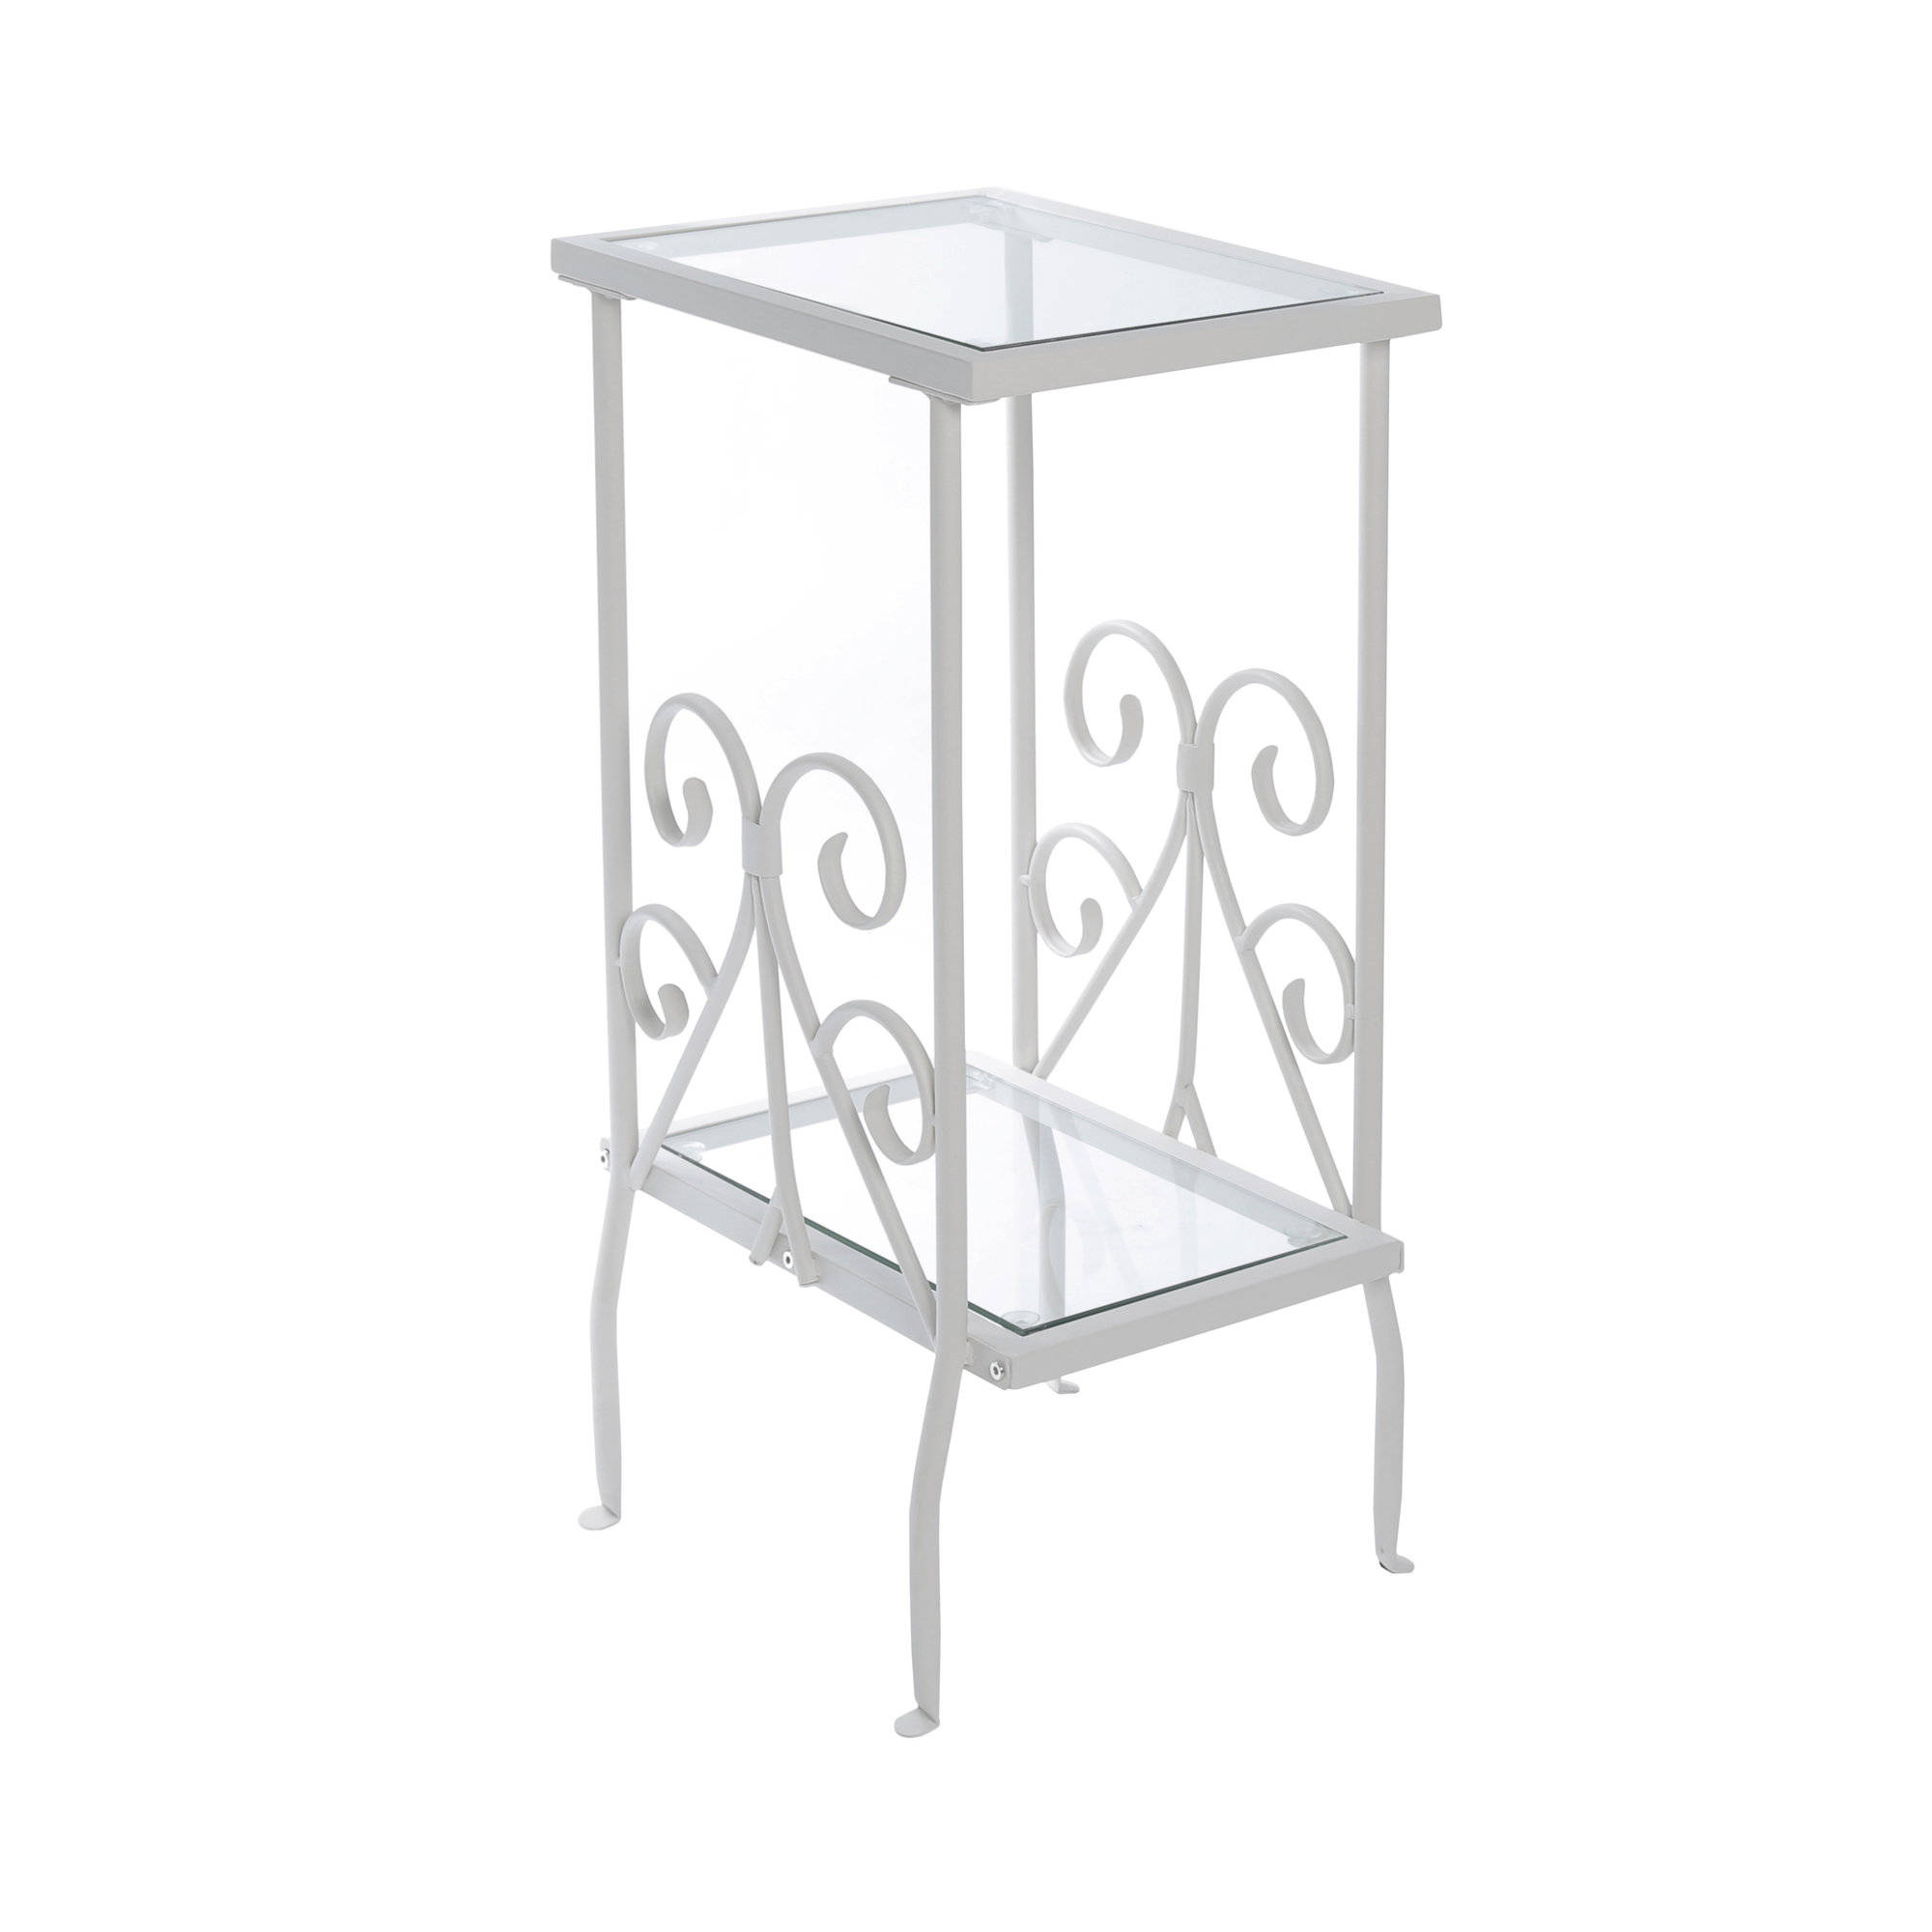 monarch specialties white clear glass accent table the classy home mnc mirrored chair patio set wood trestle dining real marble coffee accents bourse michelin target yellow side